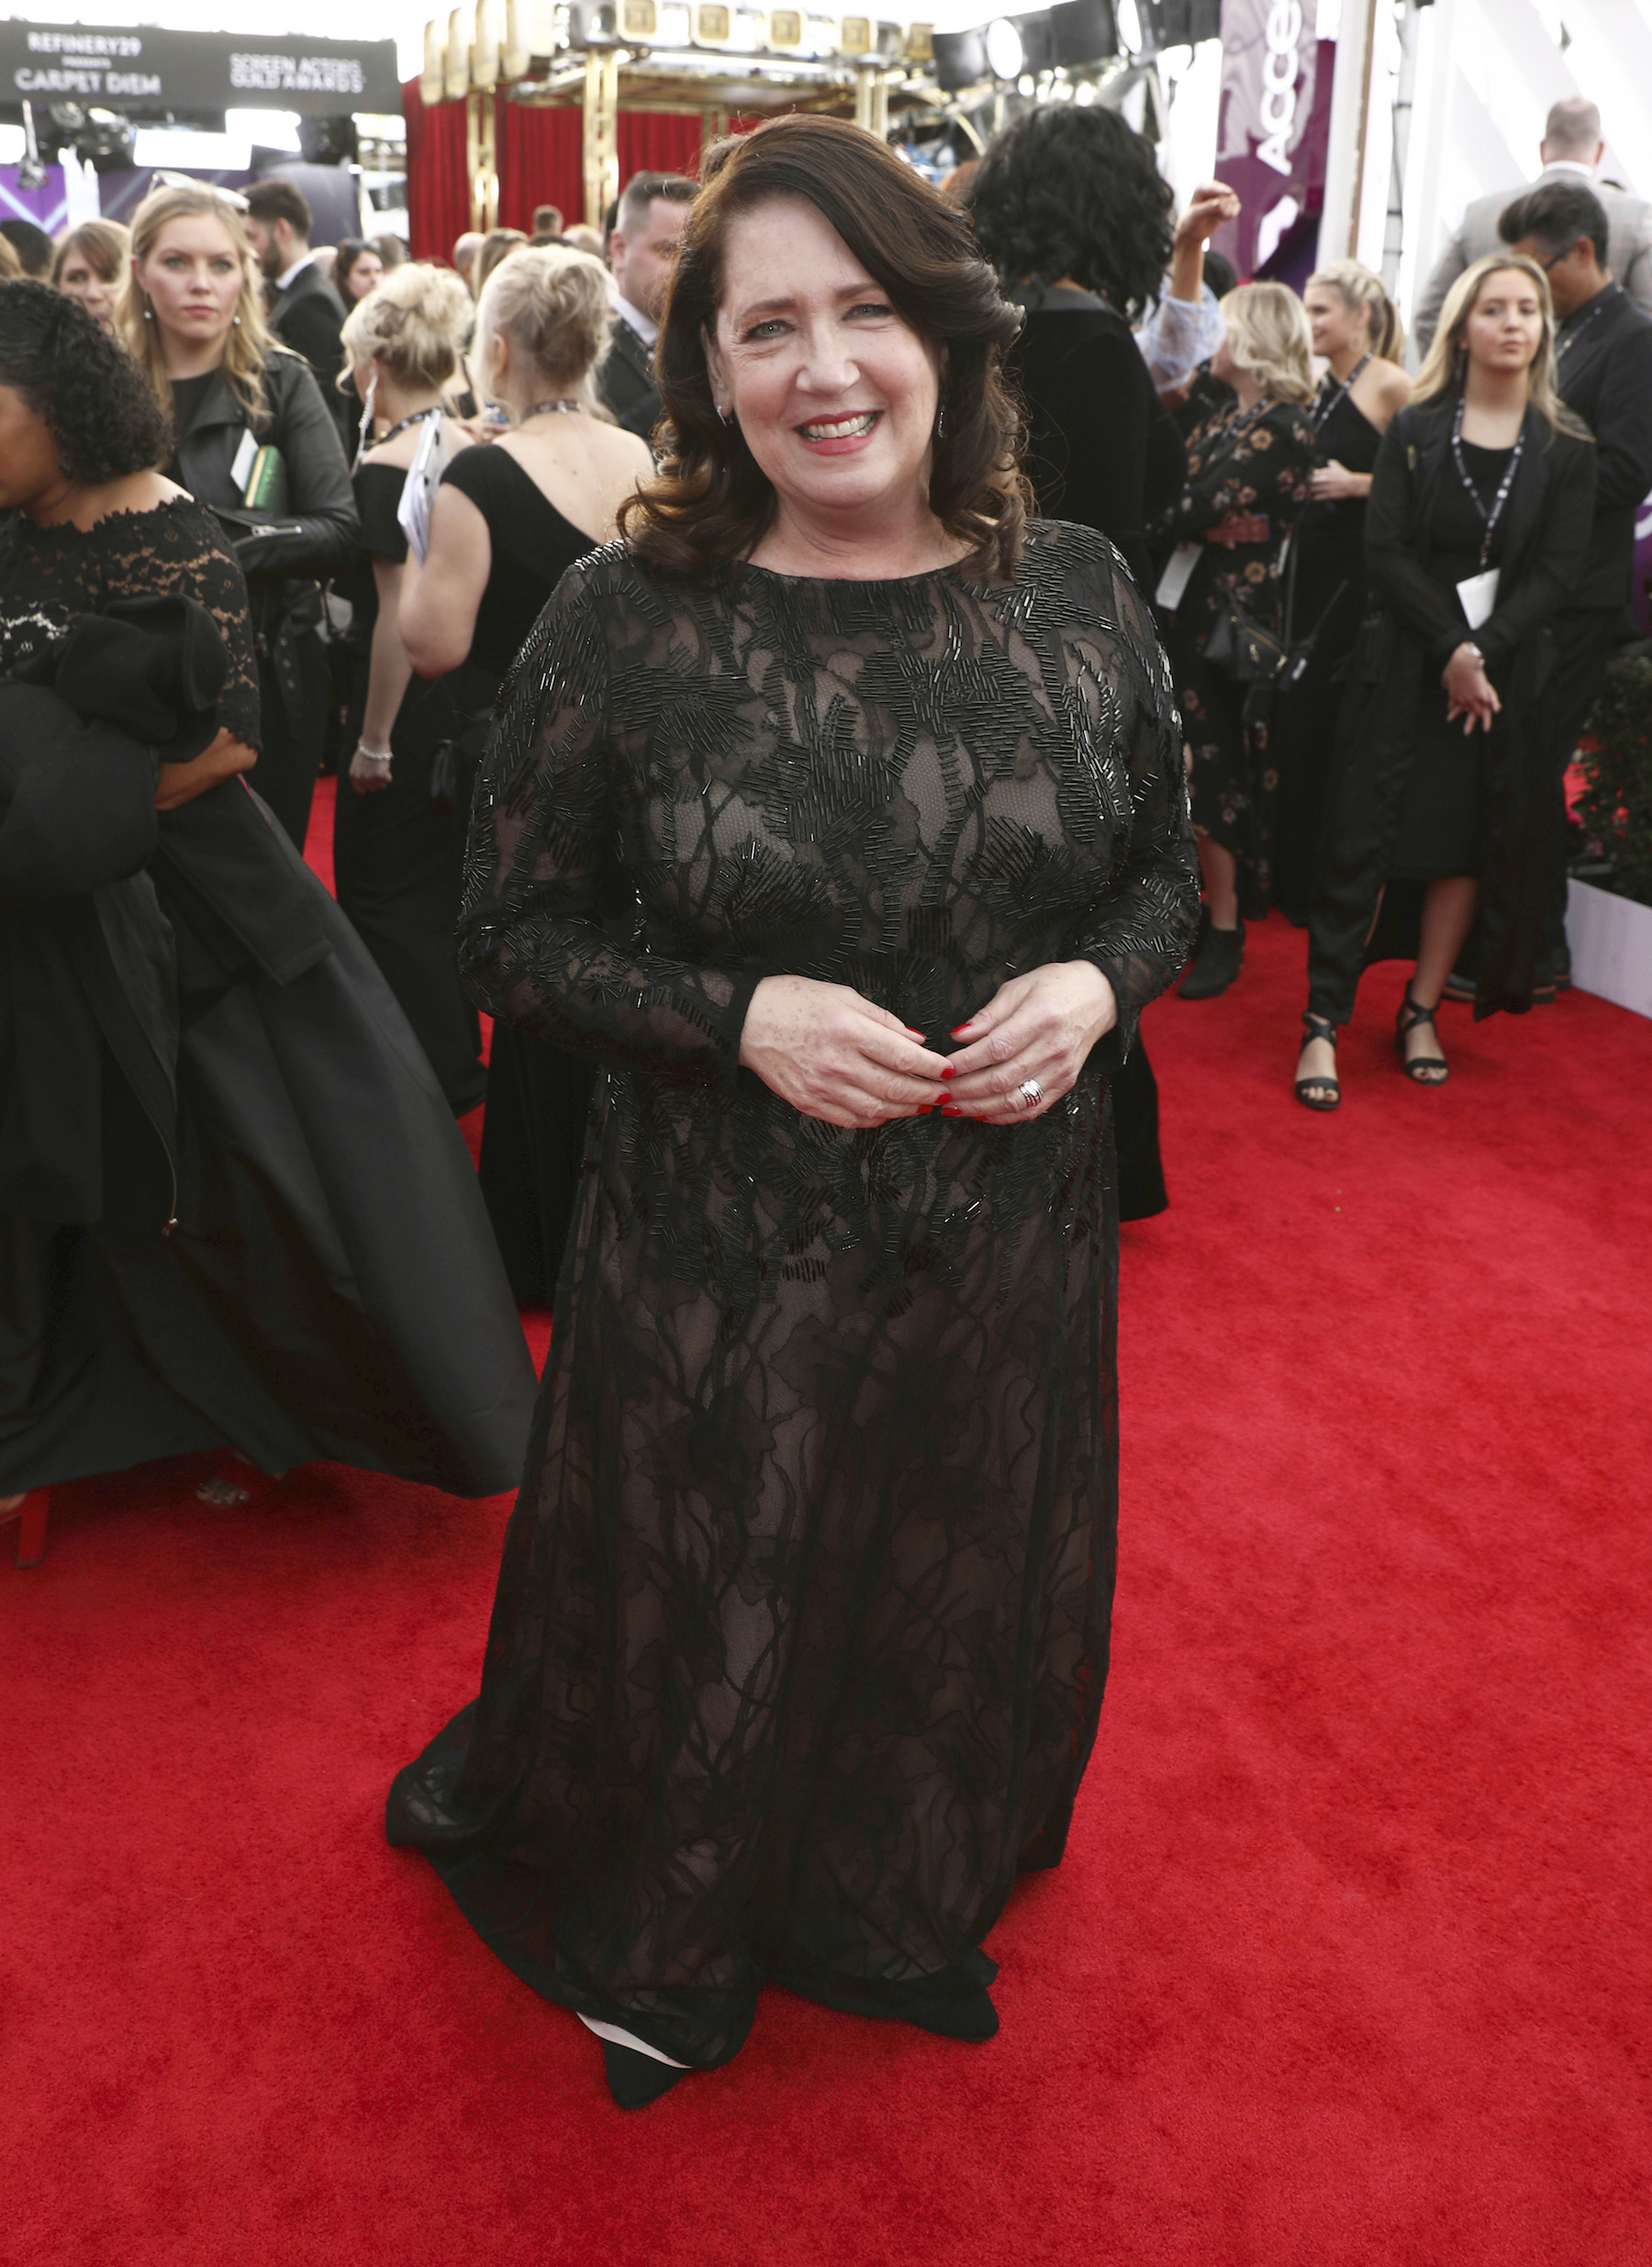 <div class='meta'><div class='origin-logo' data-origin='AP'></div><span class='caption-text' data-credit='Matt Sayles/Invision/AP'>Ann Dowd arrives at the 24th annual Screen Actors Guild Awards at the Shrine Auditorium & Expo Hall on Sunday, Jan. 21, 2018, in Los Angeles.</span></div>